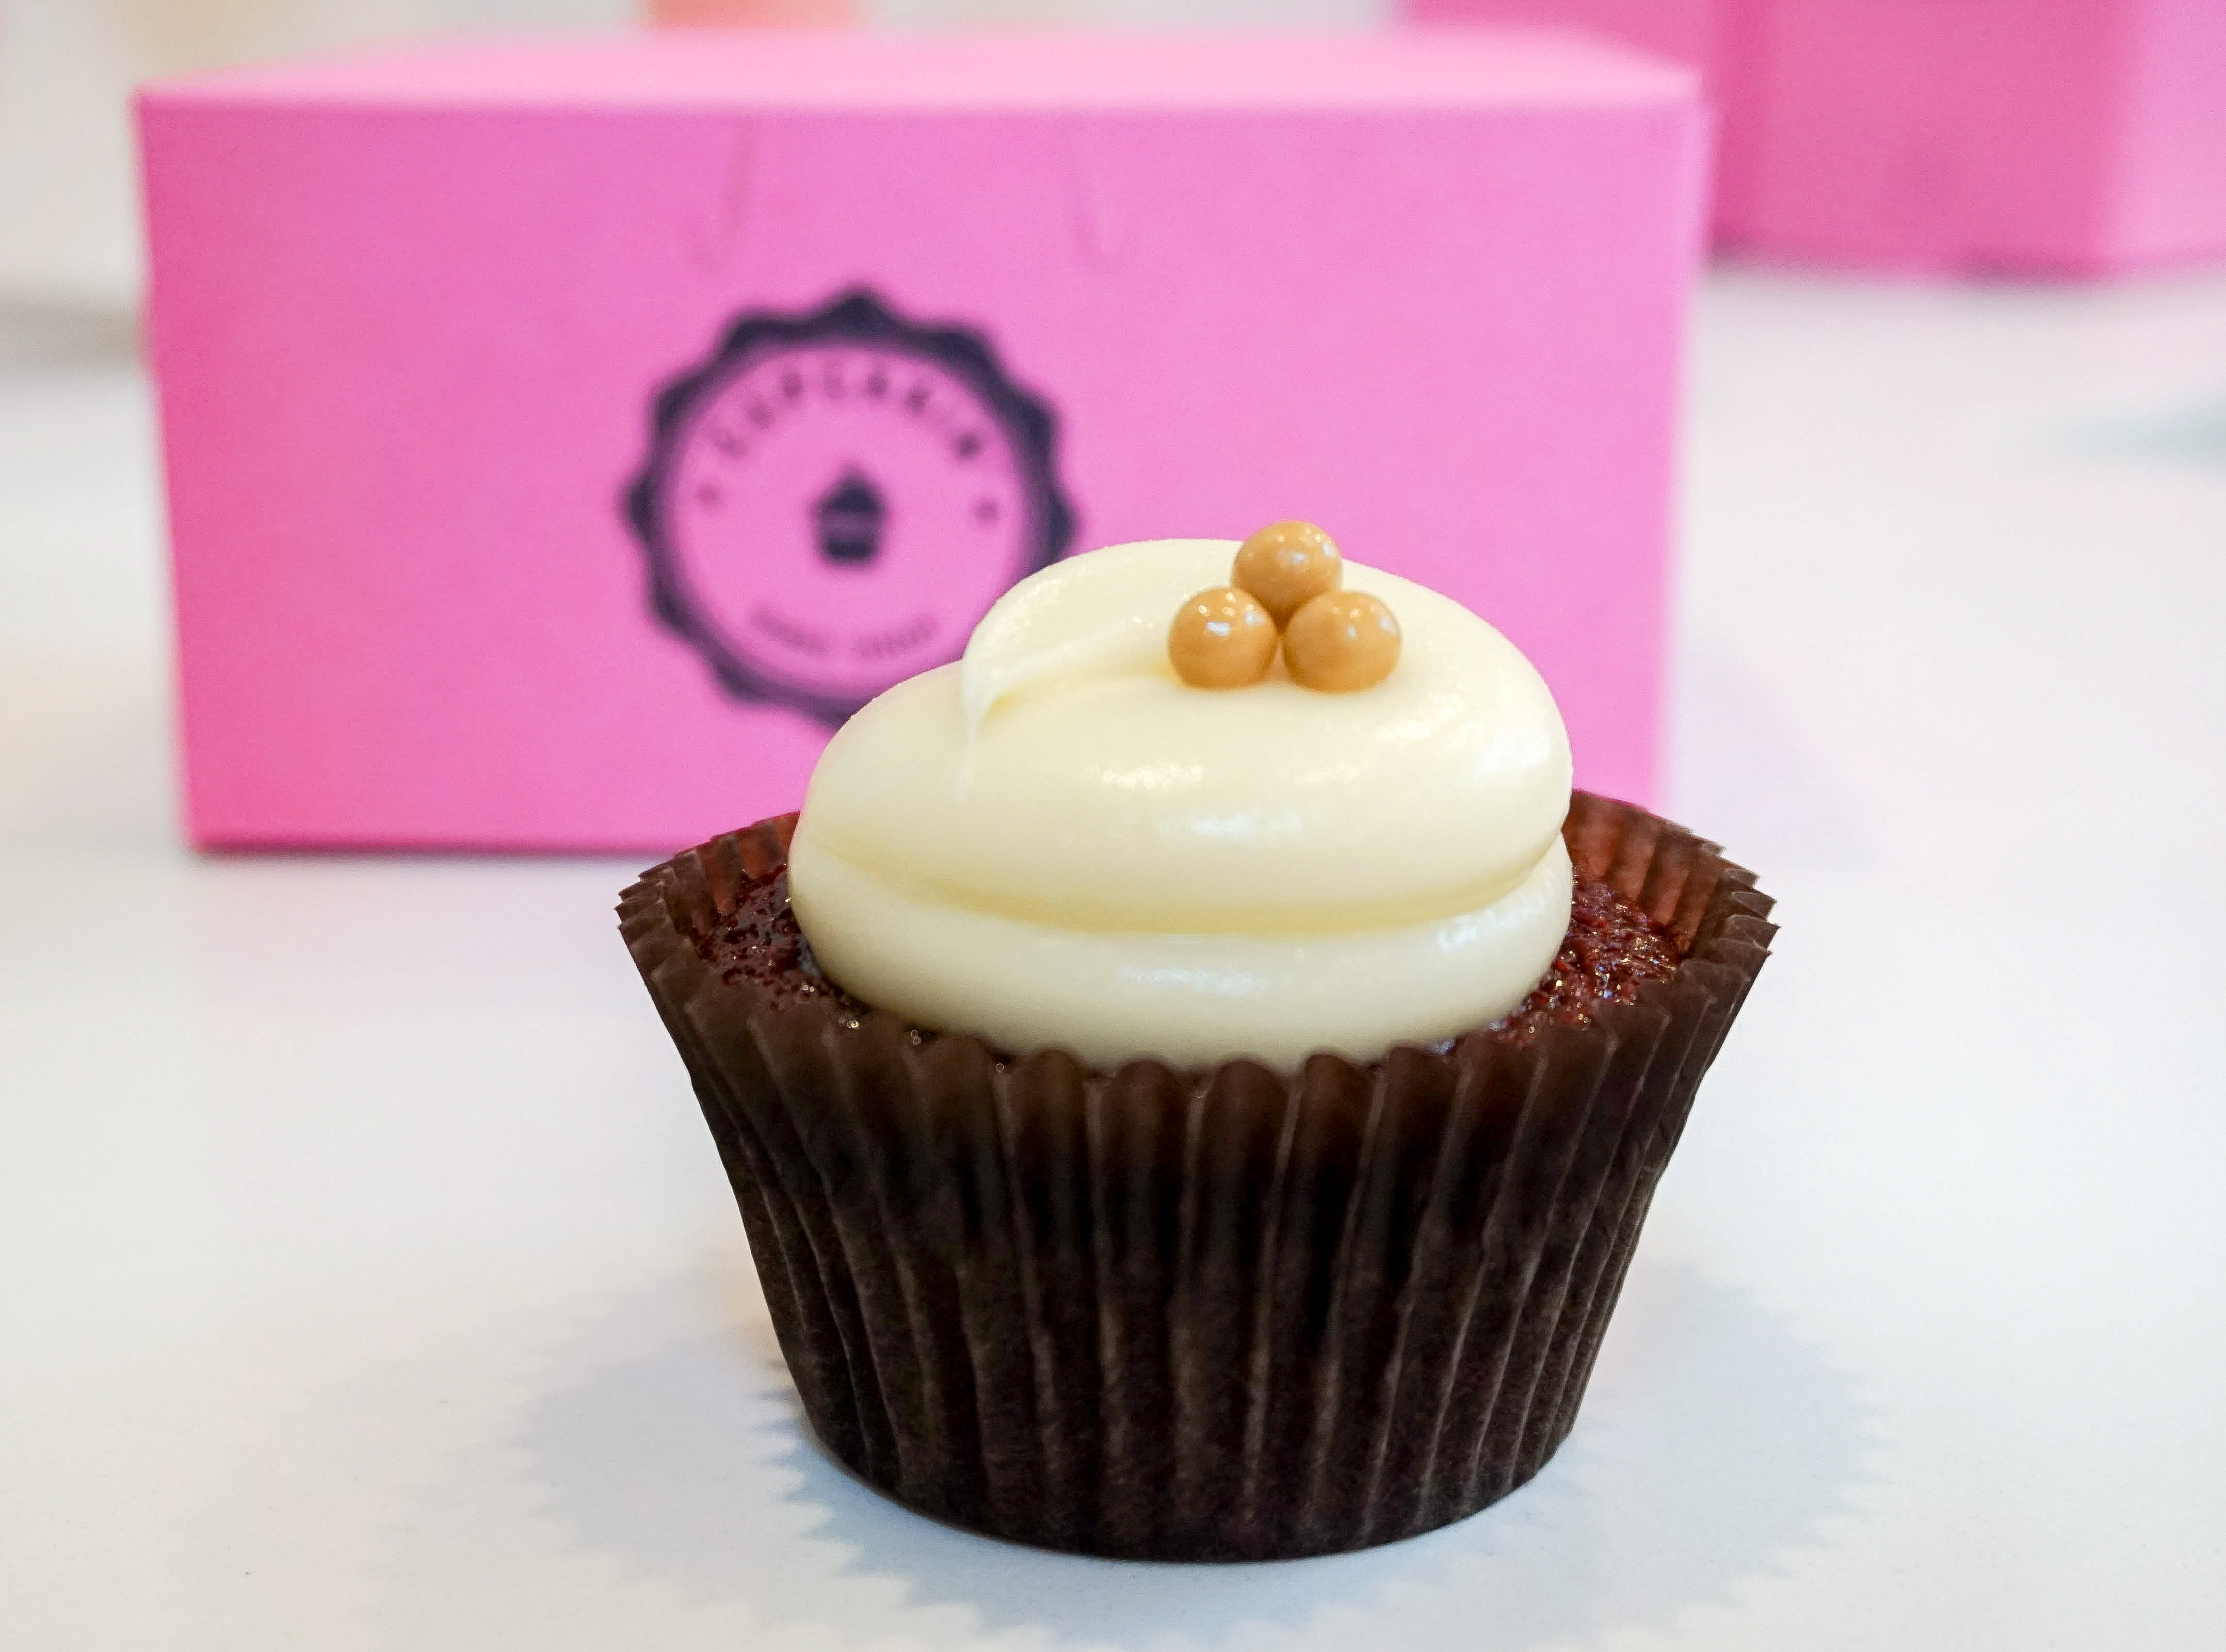 You are a Red Velvet cupcake!